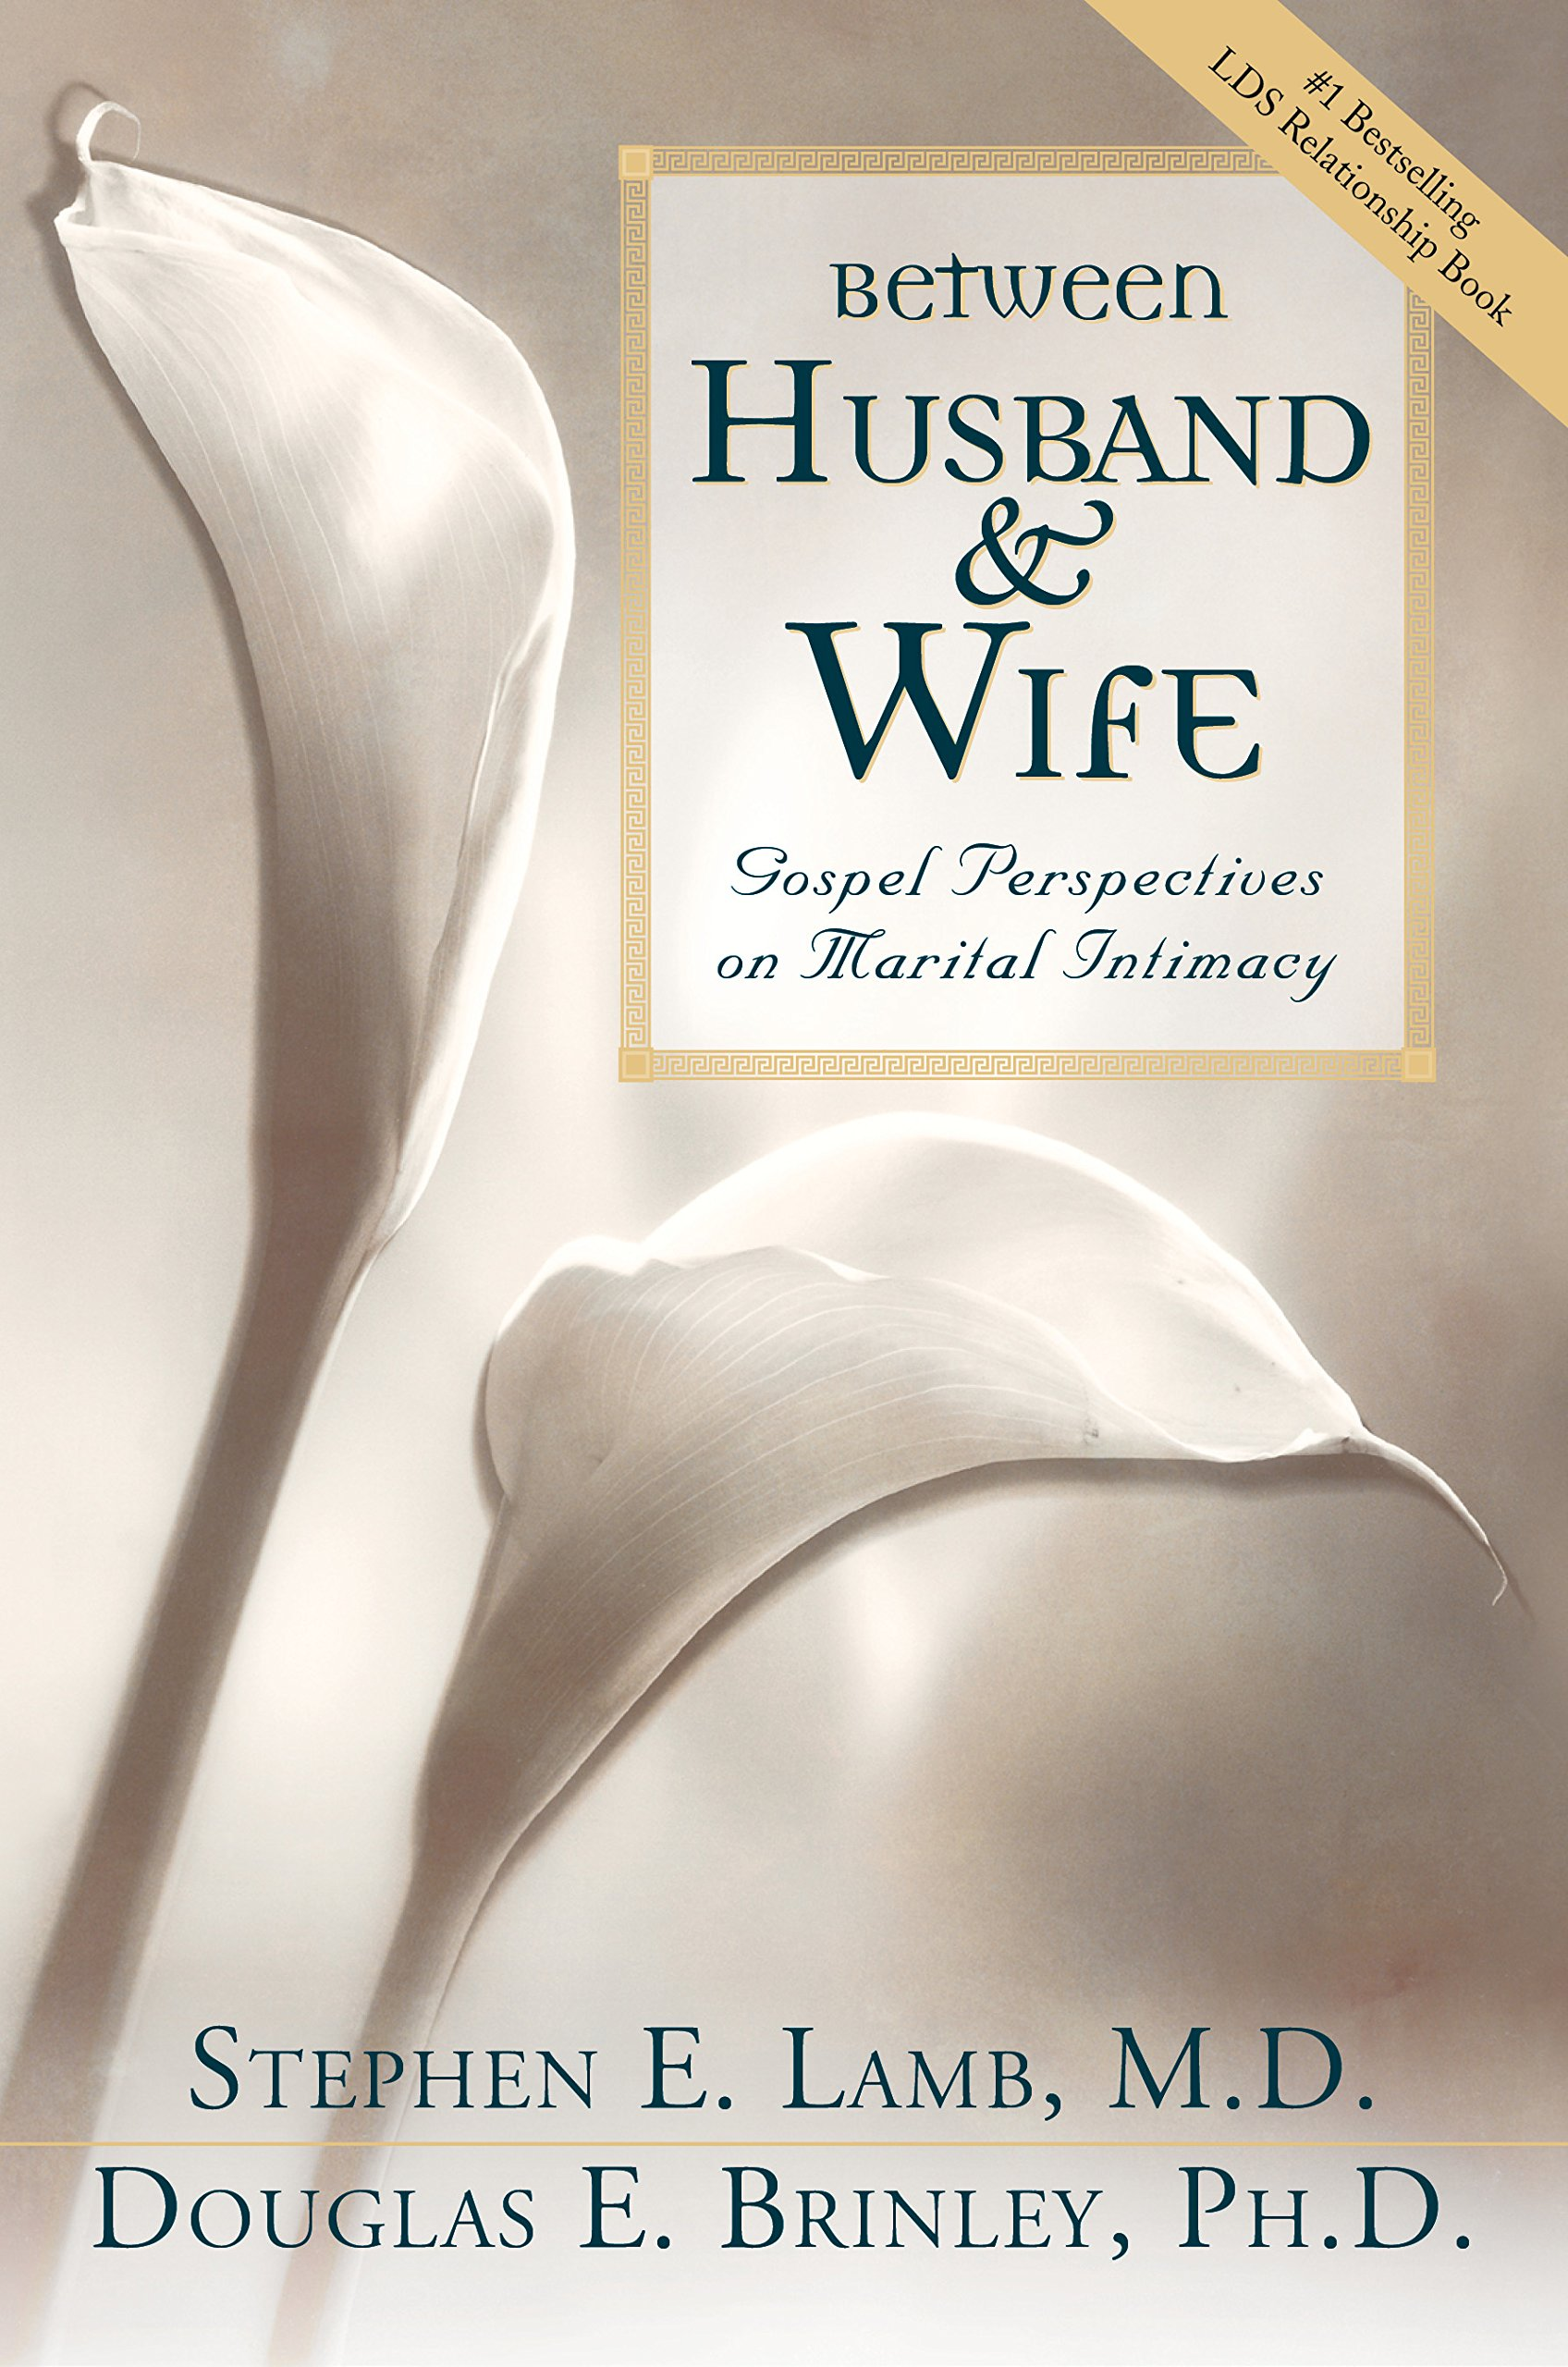 BETWEEN HUSBAND AND WIFE -  Gospel Perspectives on Marital Intimacy, Lamb, Stephen E. And Brinley, Douglas E.